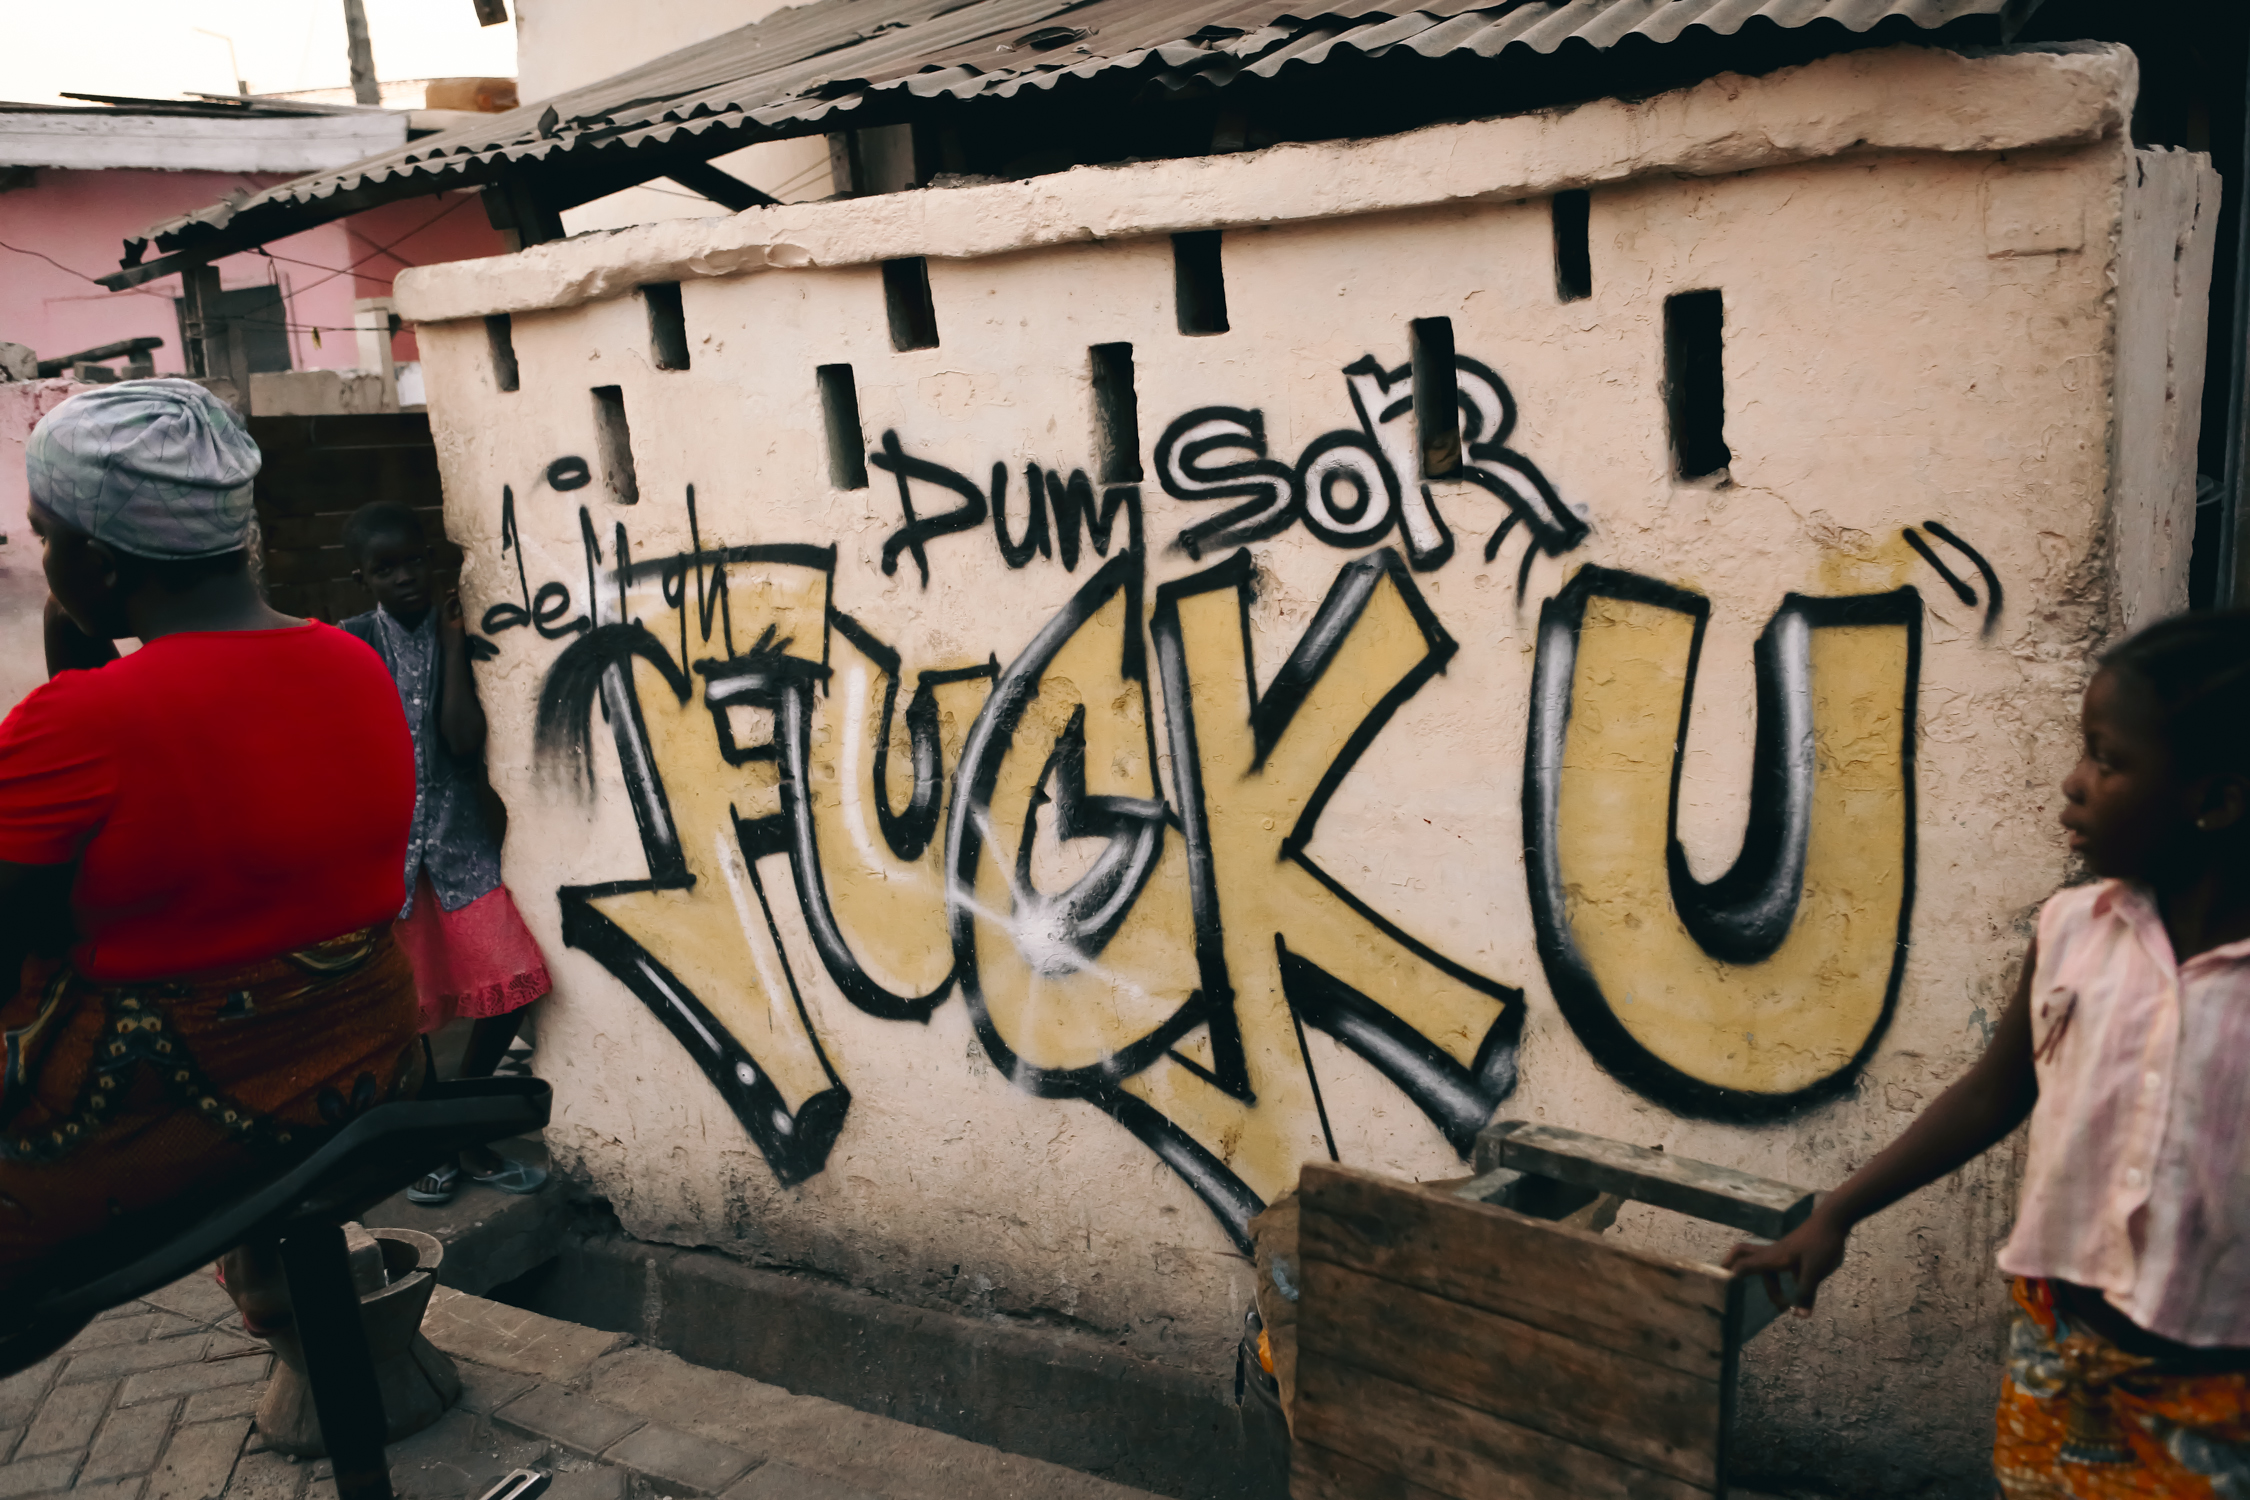 Graffiti artists in Jamestown express their frustration about dumsor, the Ghanaian term used to describe persistent, irregular and unpredictable power outages.